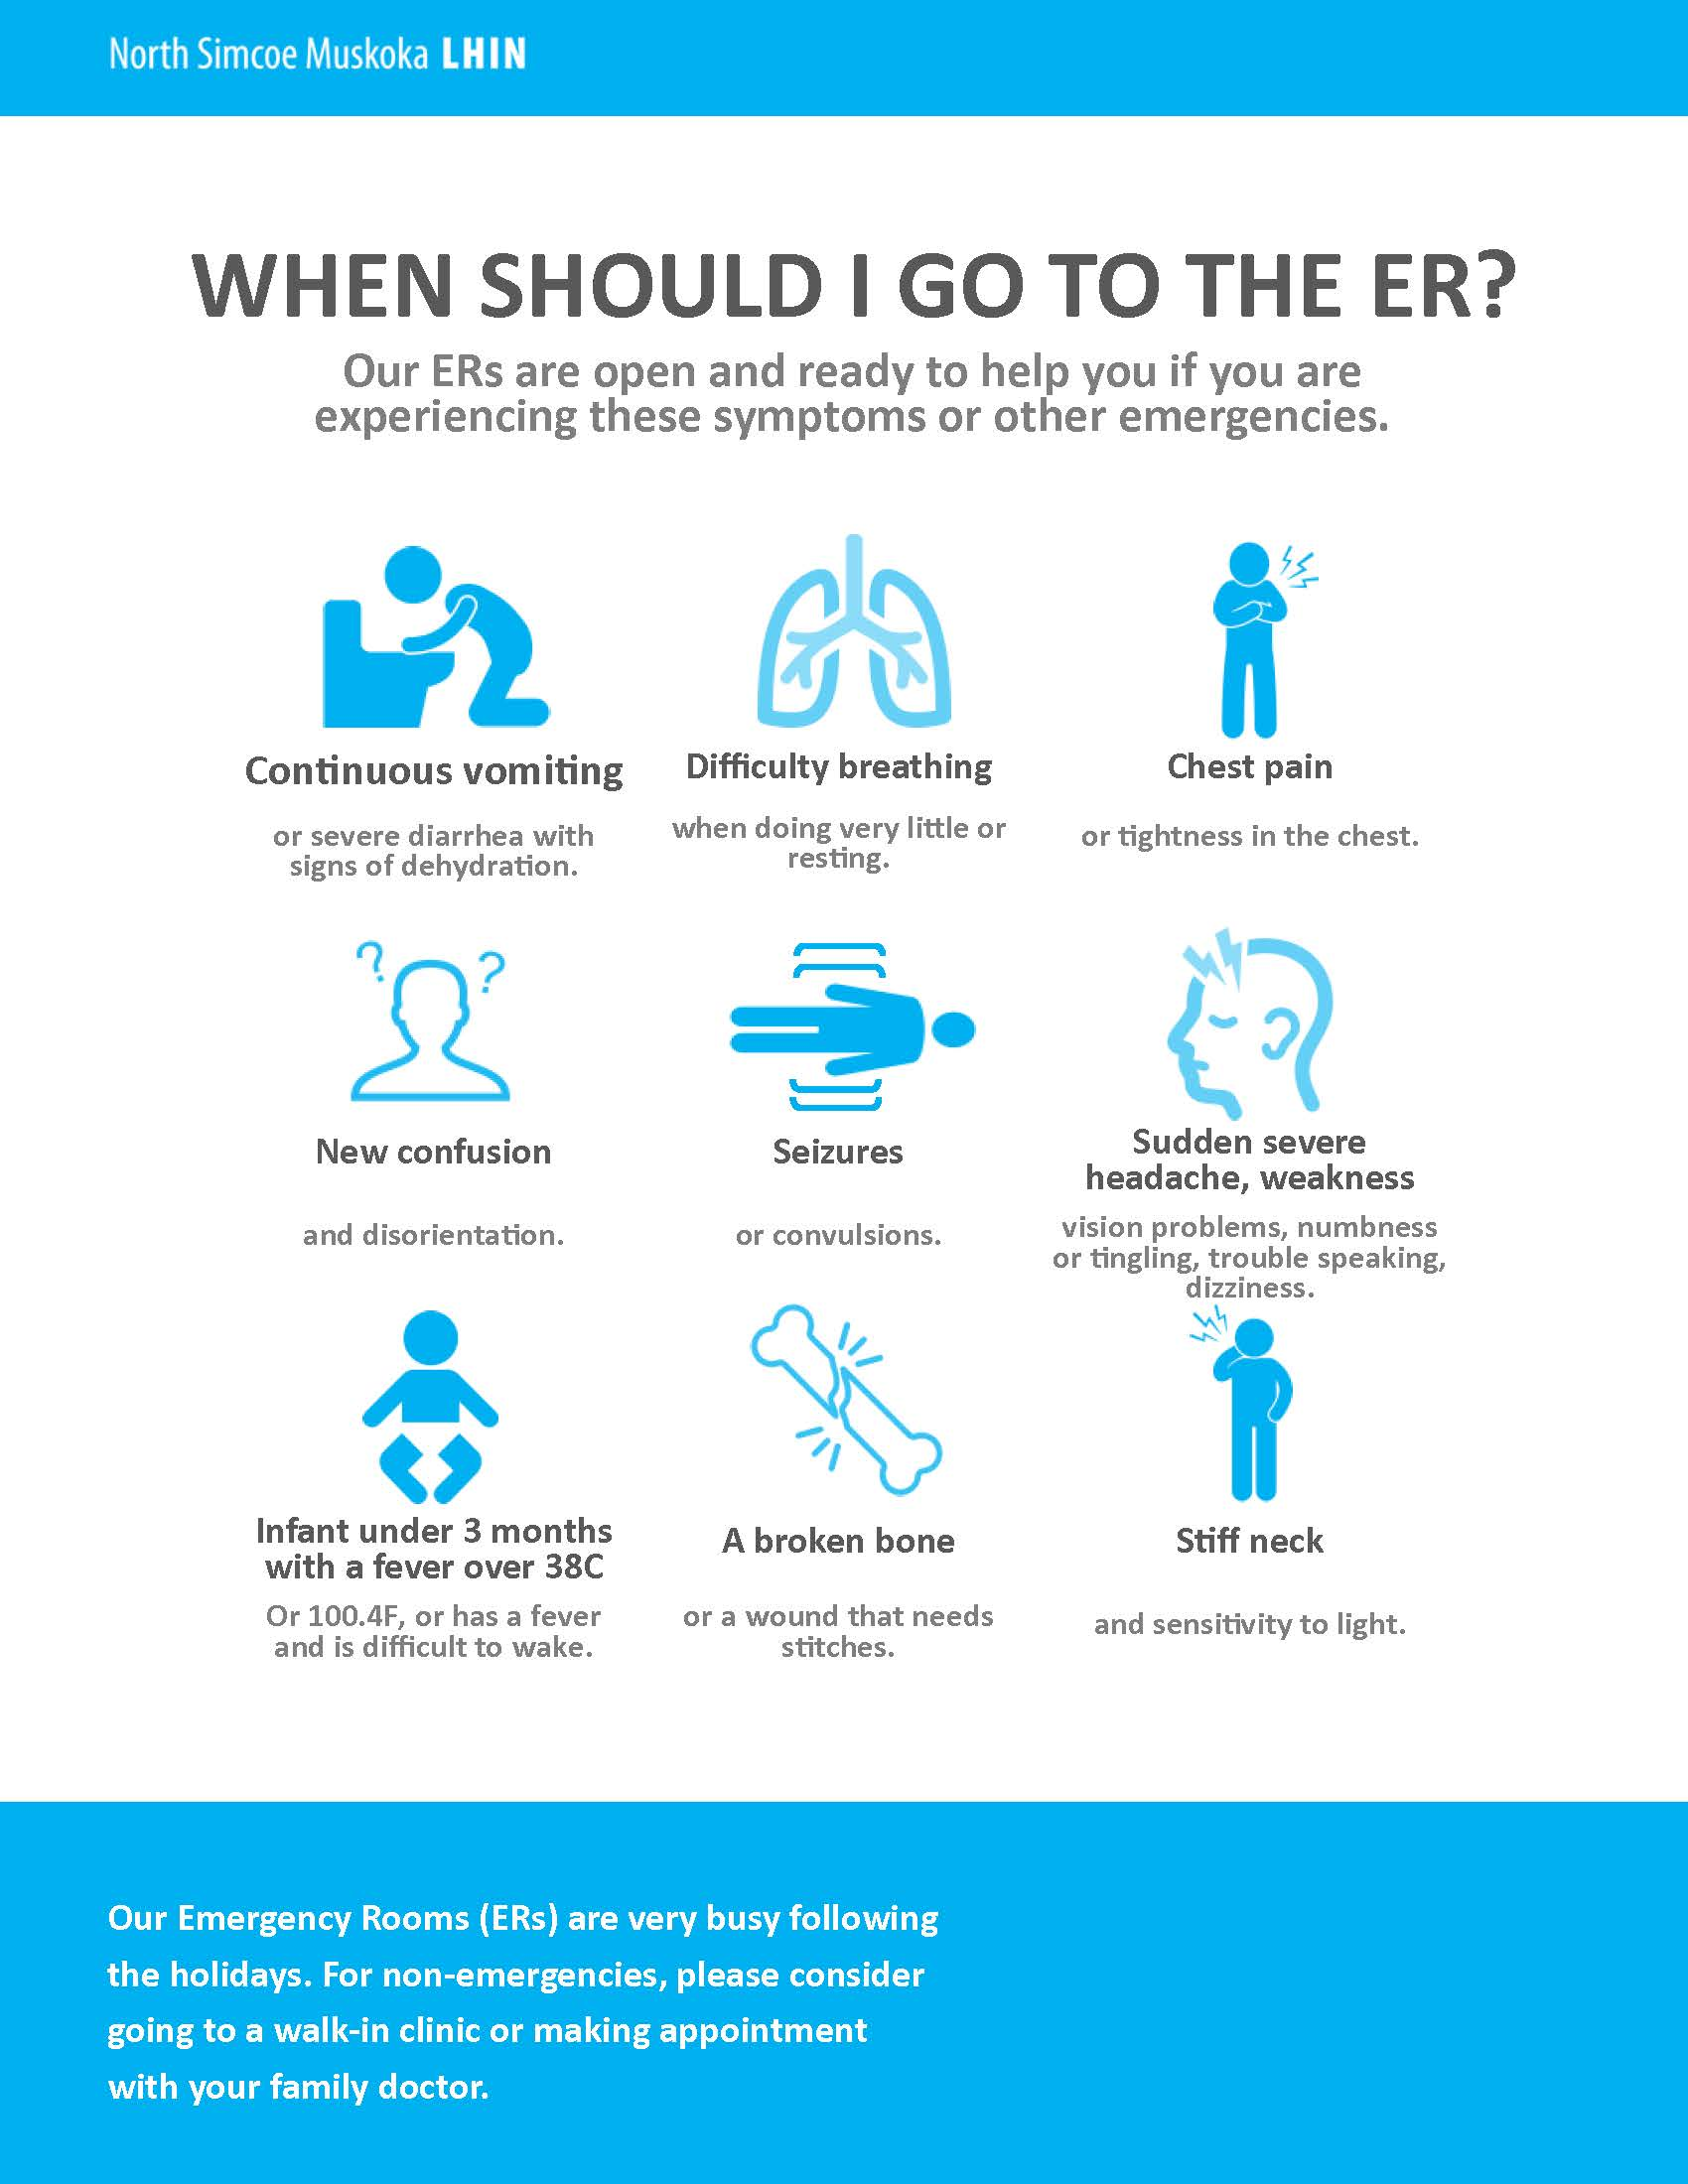 When to visit ER Infographic.jpg